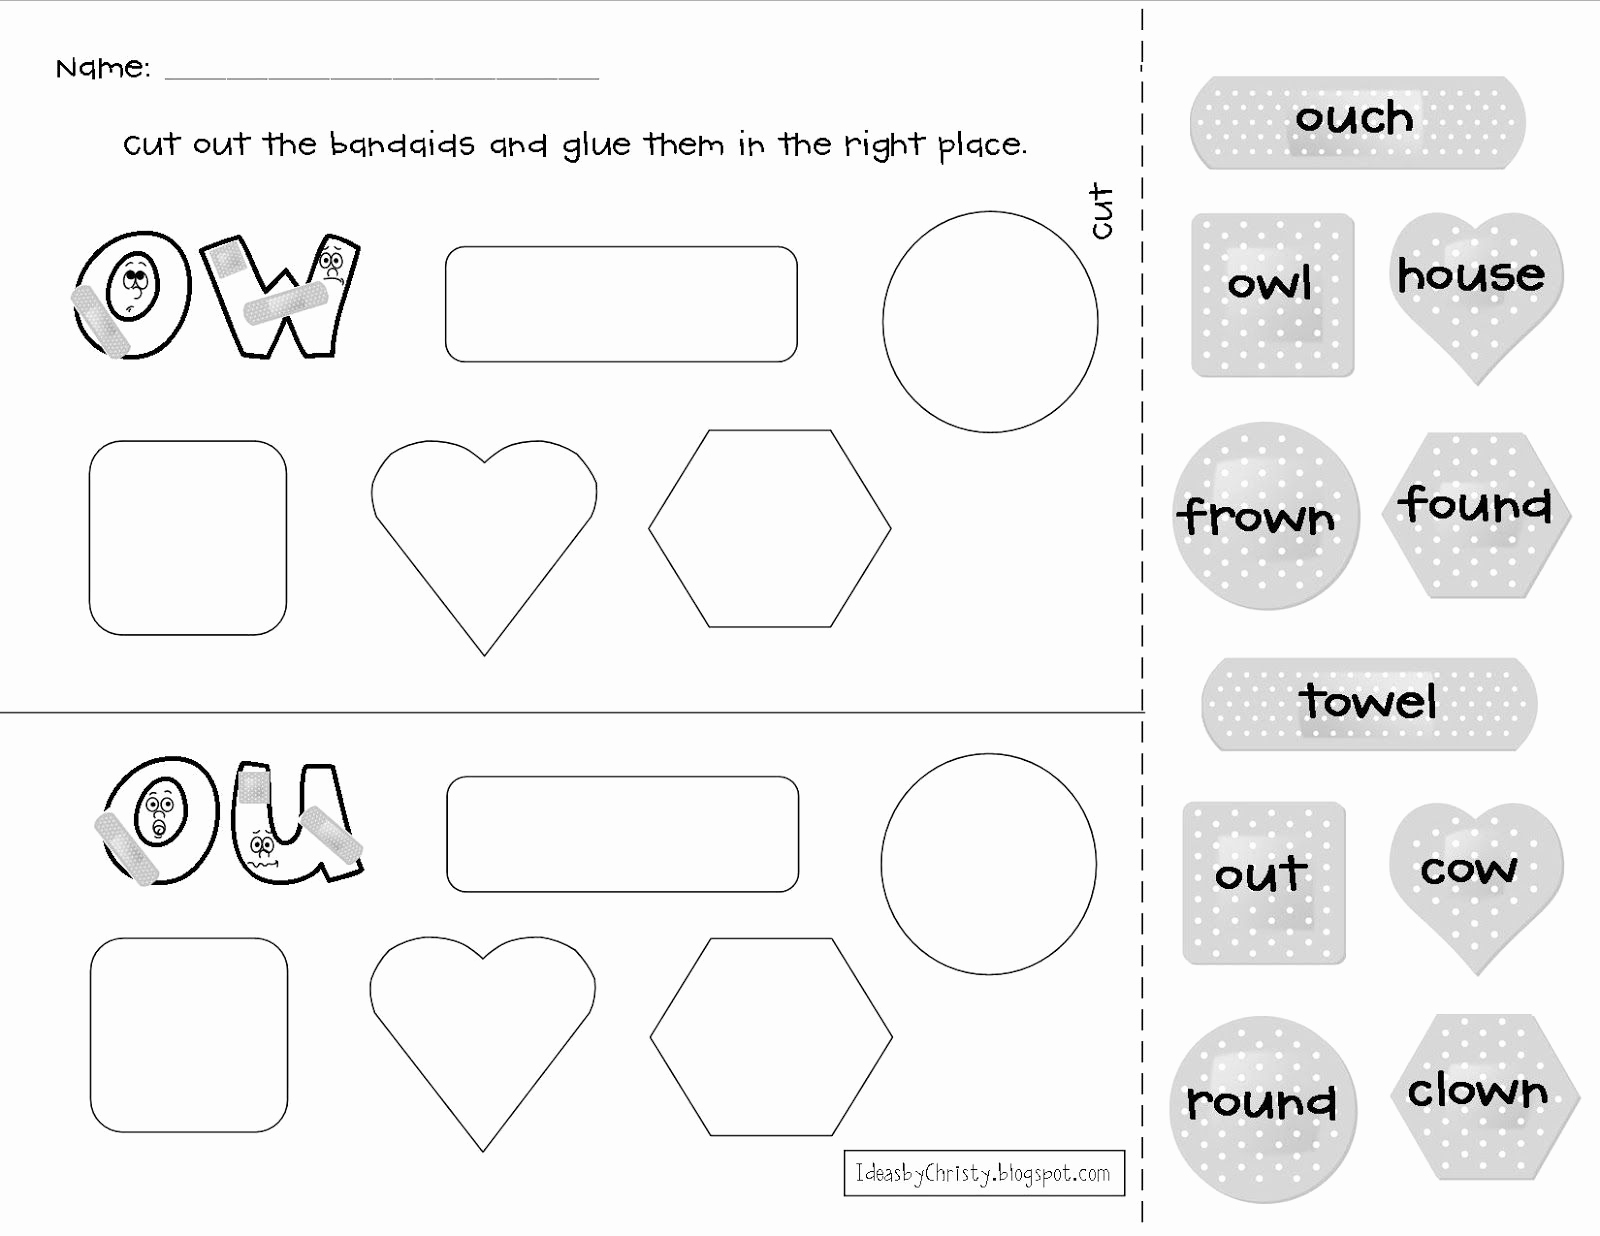 Ou Ow Worksheets 3rd Grade Luxury Like This Ow Ou Activity $teachers Pay Teachers